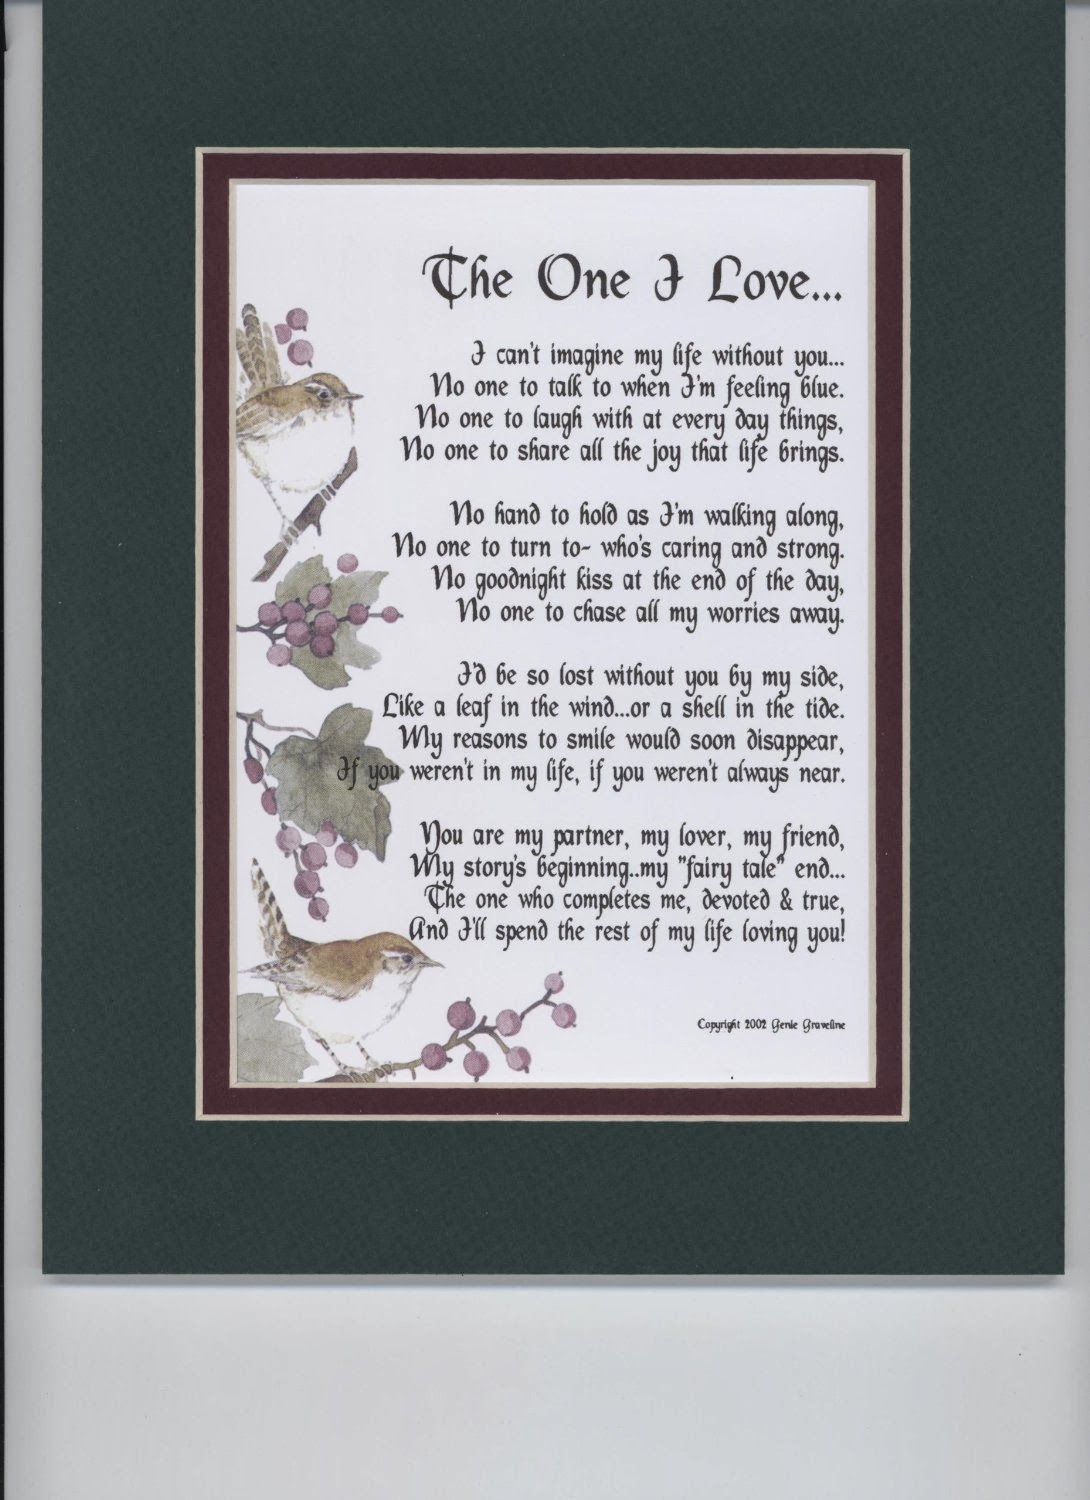 """The One I Love"" A Sentimental Gift For A Wife, Husband, Girlfriend Or Boyfriend. Touching 8x10 Poem, Double-matted In Dark Green/Burgundy, And Enhanced With Watercolor Graphics."